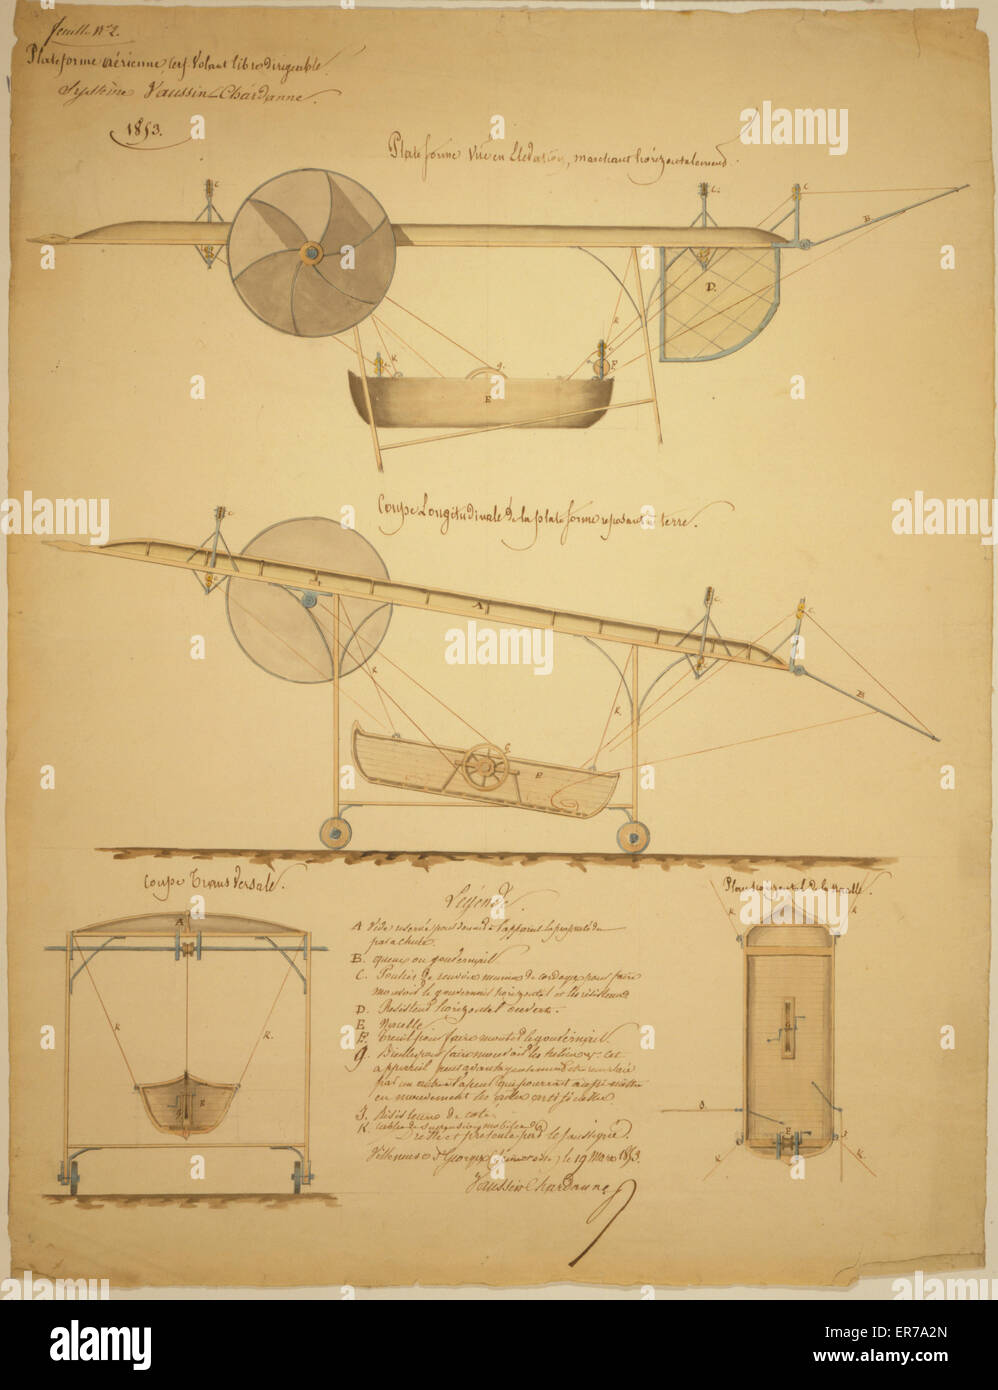 Plateforme aerienne, cerf-volant libre dirigeable, systeme Vaussin-Chardanne. Feuille no. 2. Design drawing shows - Stock Image